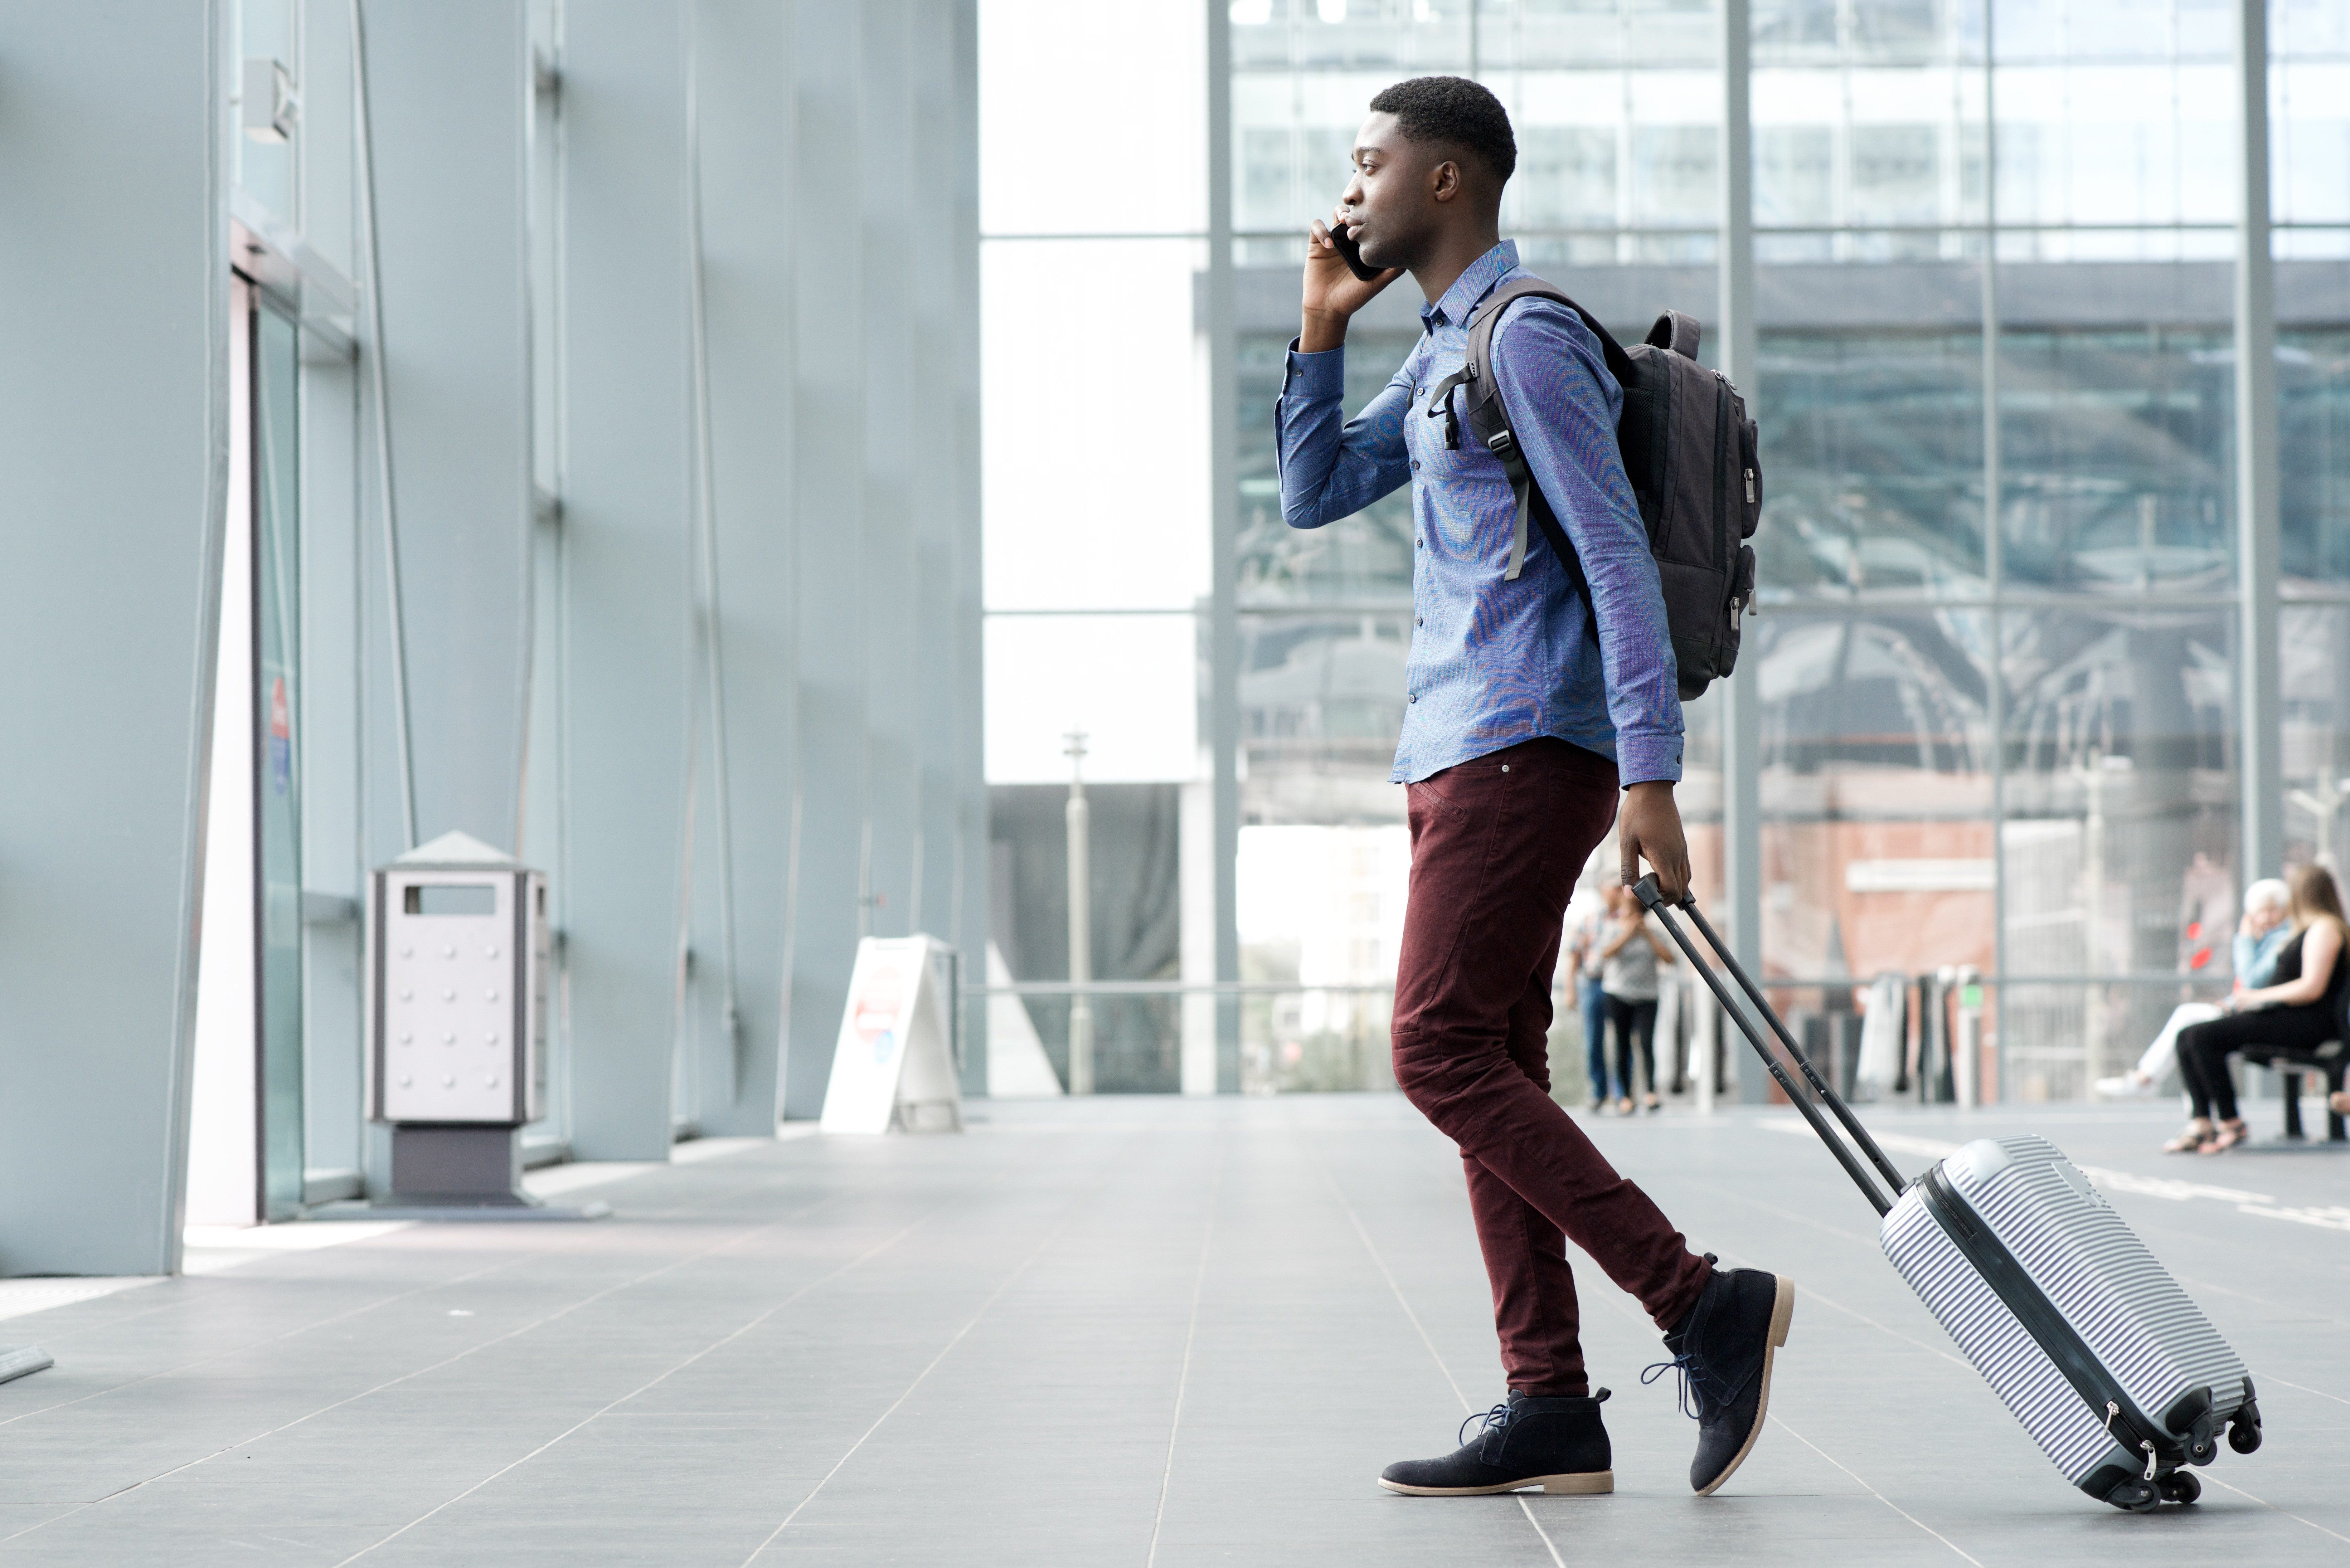 Full body side portrait of young african man traveling with suitcase and cellphone at airport